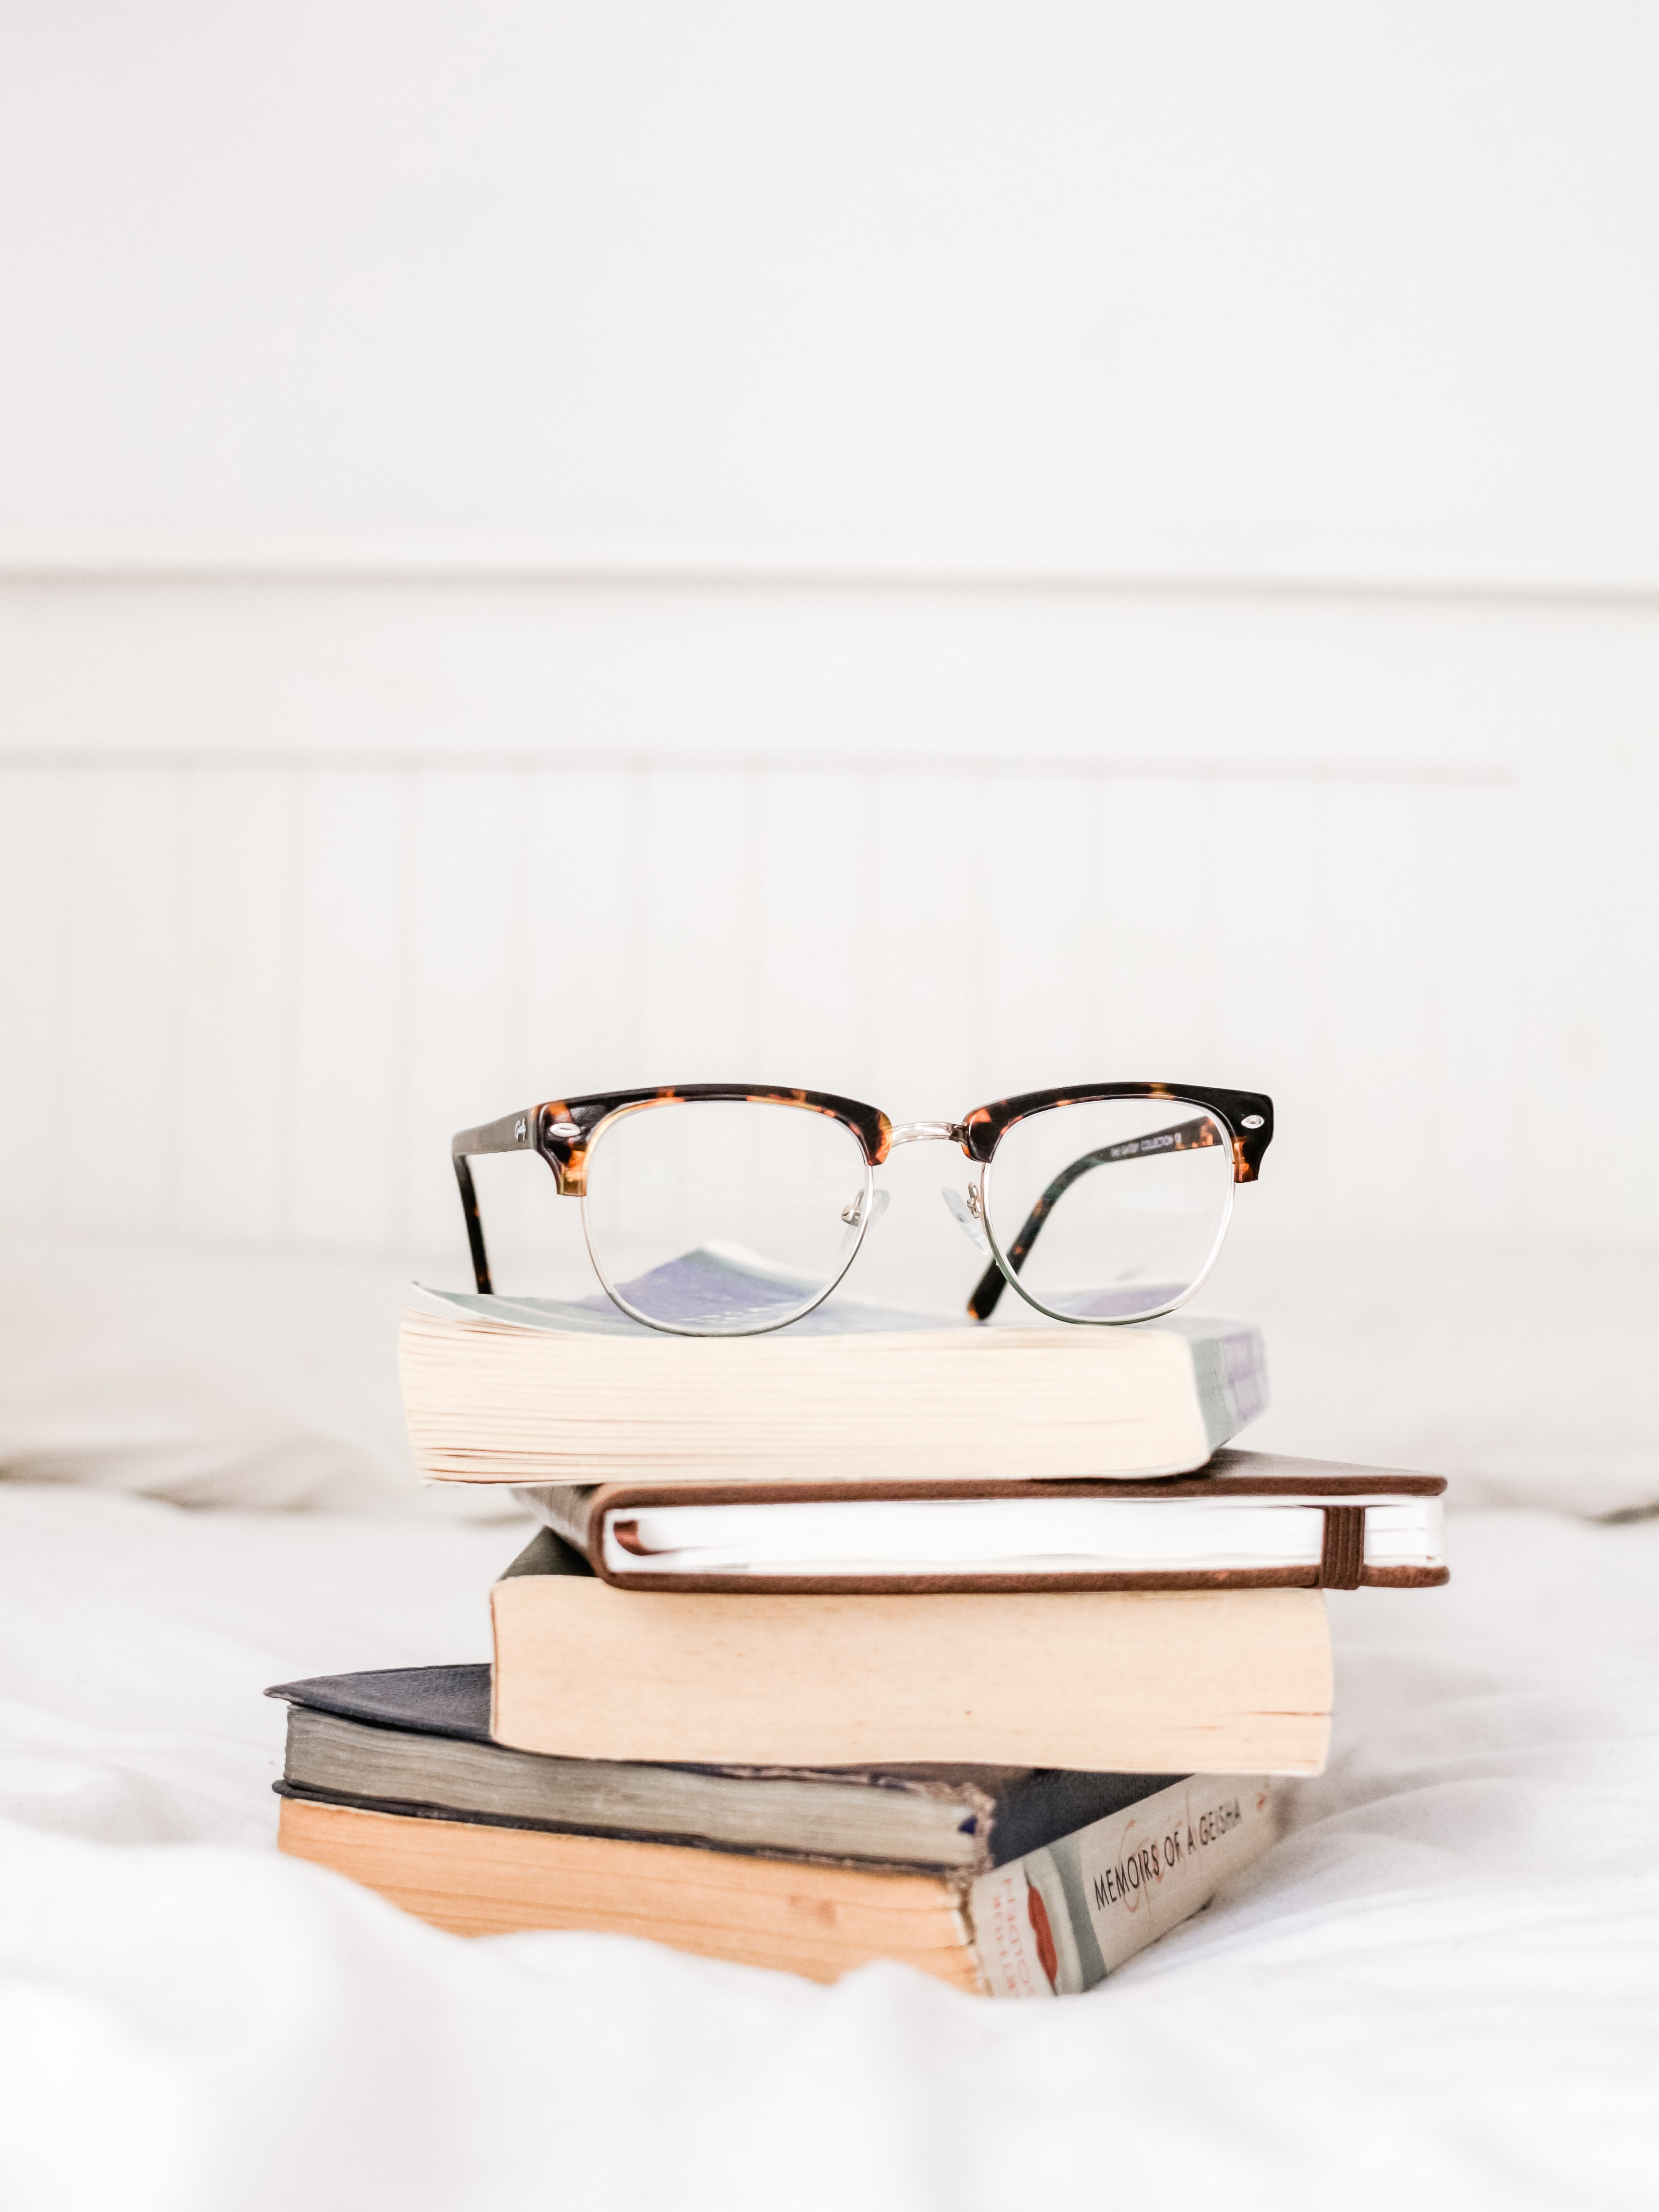 eyeglasses on pile books